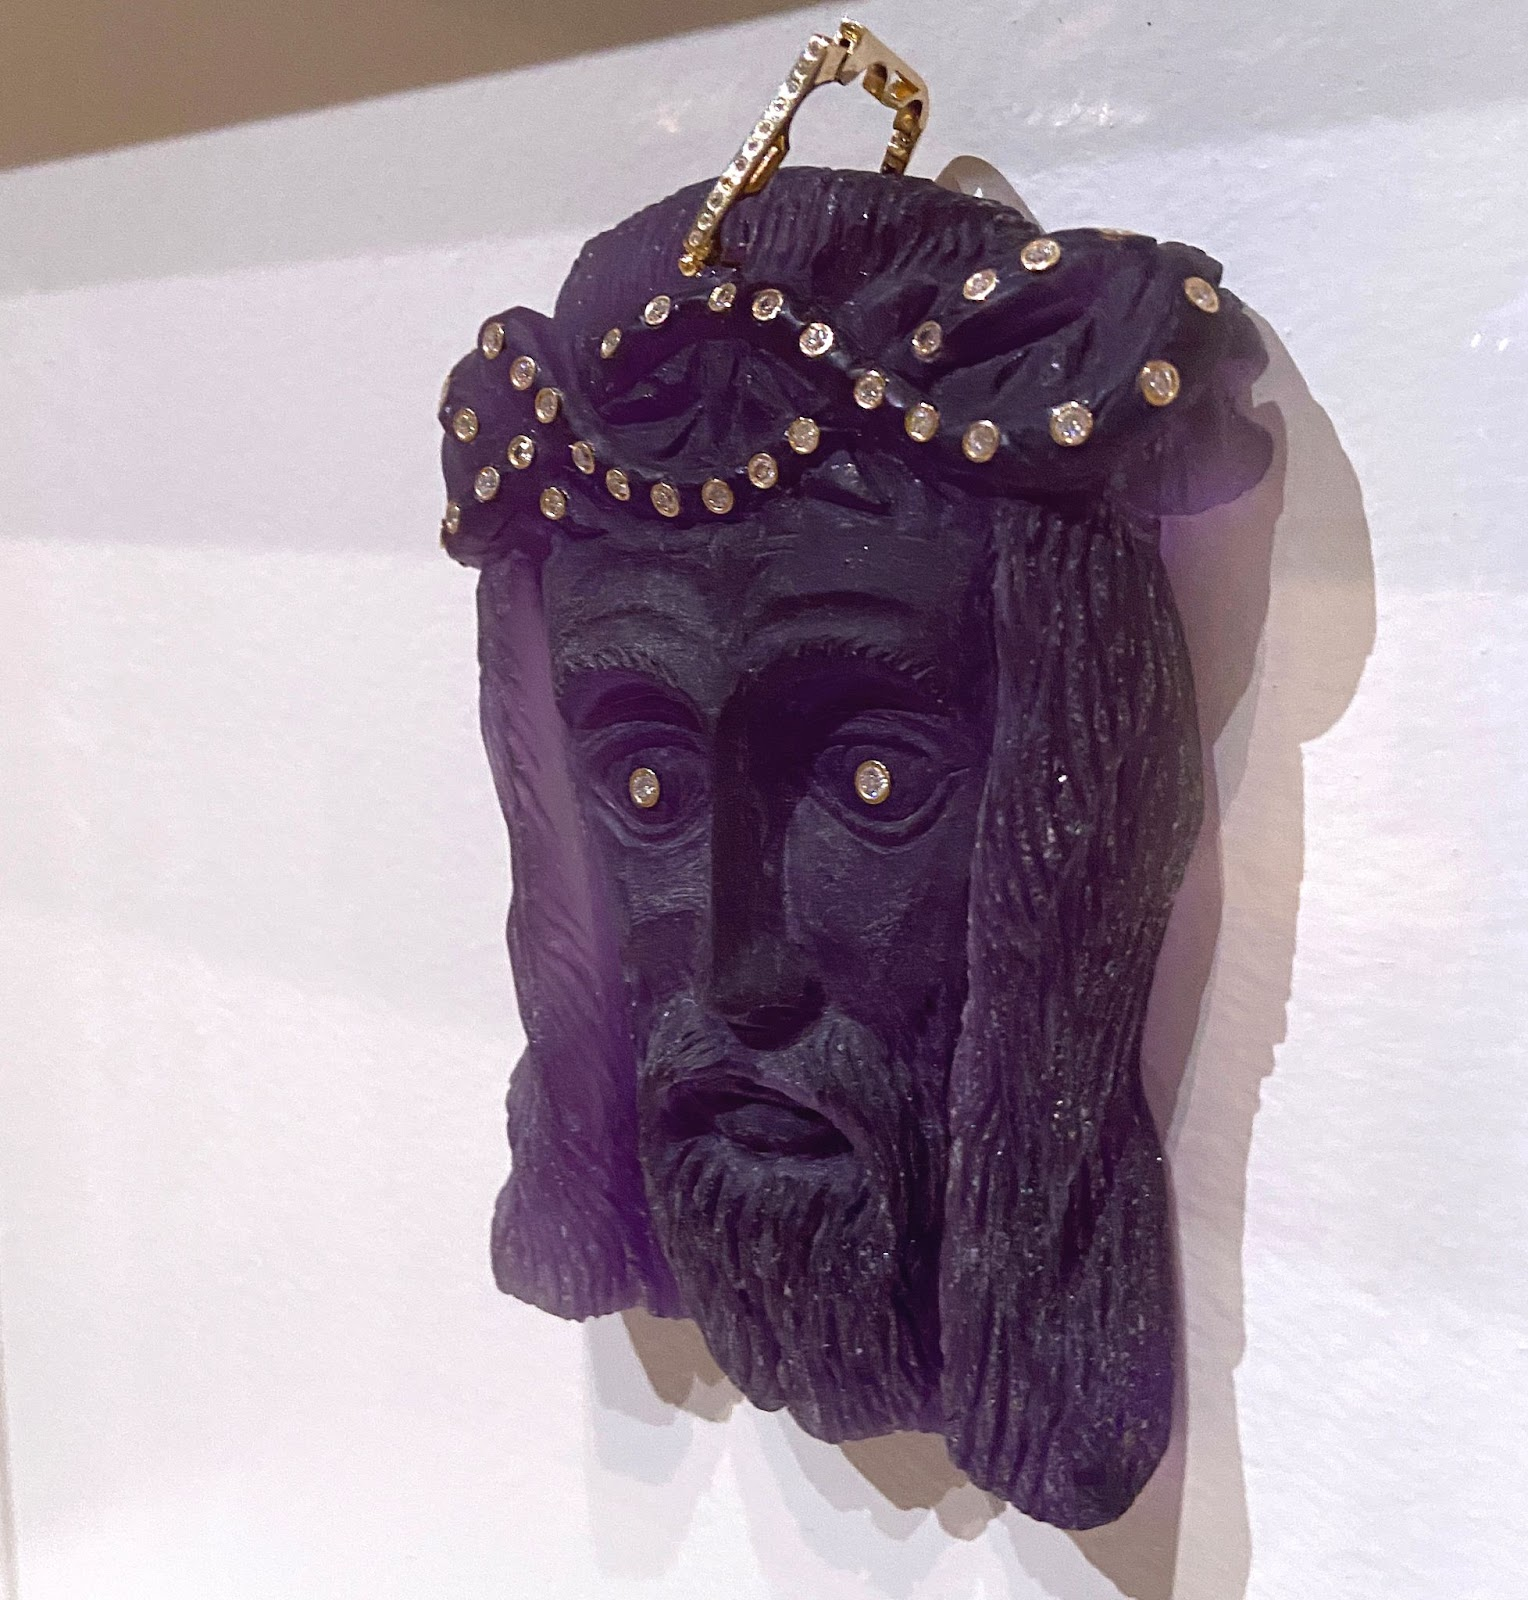 Image: A Jesus piece behind glass is hung on the wall of the gallery. The carving features the face of Jesus Christ with a loop at the top; the entire sculpture is painted purple. The eyes have been embellished with gems that resemble small diamonds set in gold. These embellishments also make up the crown on Jesus' head. Photo by Jessica Hammie.